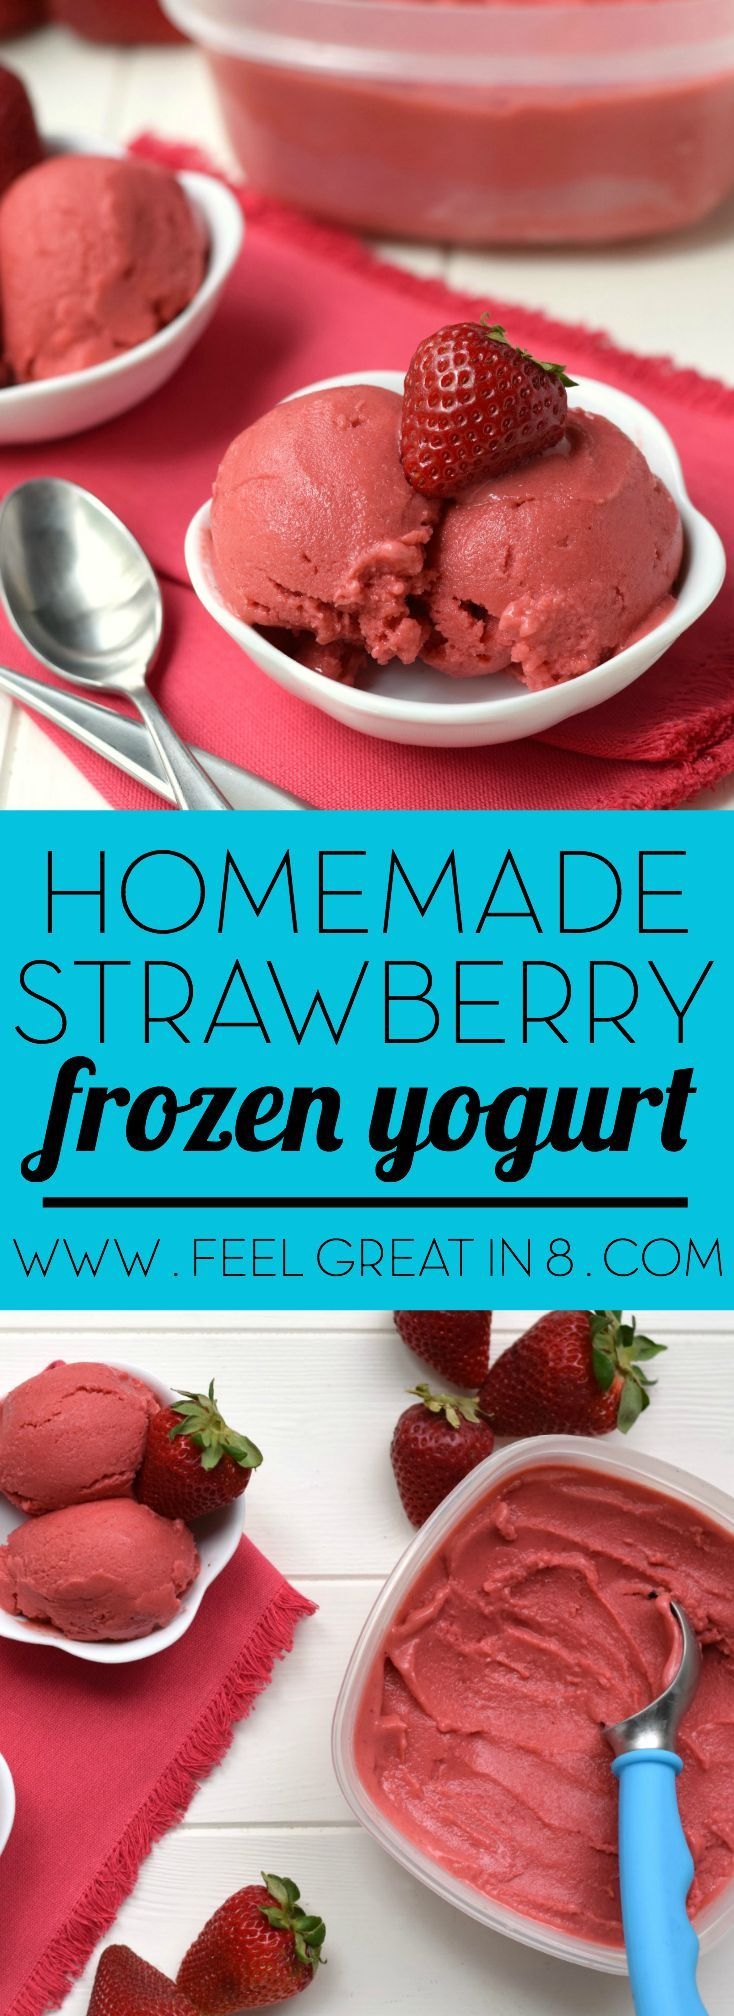 Strawberry Frozen Yogurt #healthyicecream